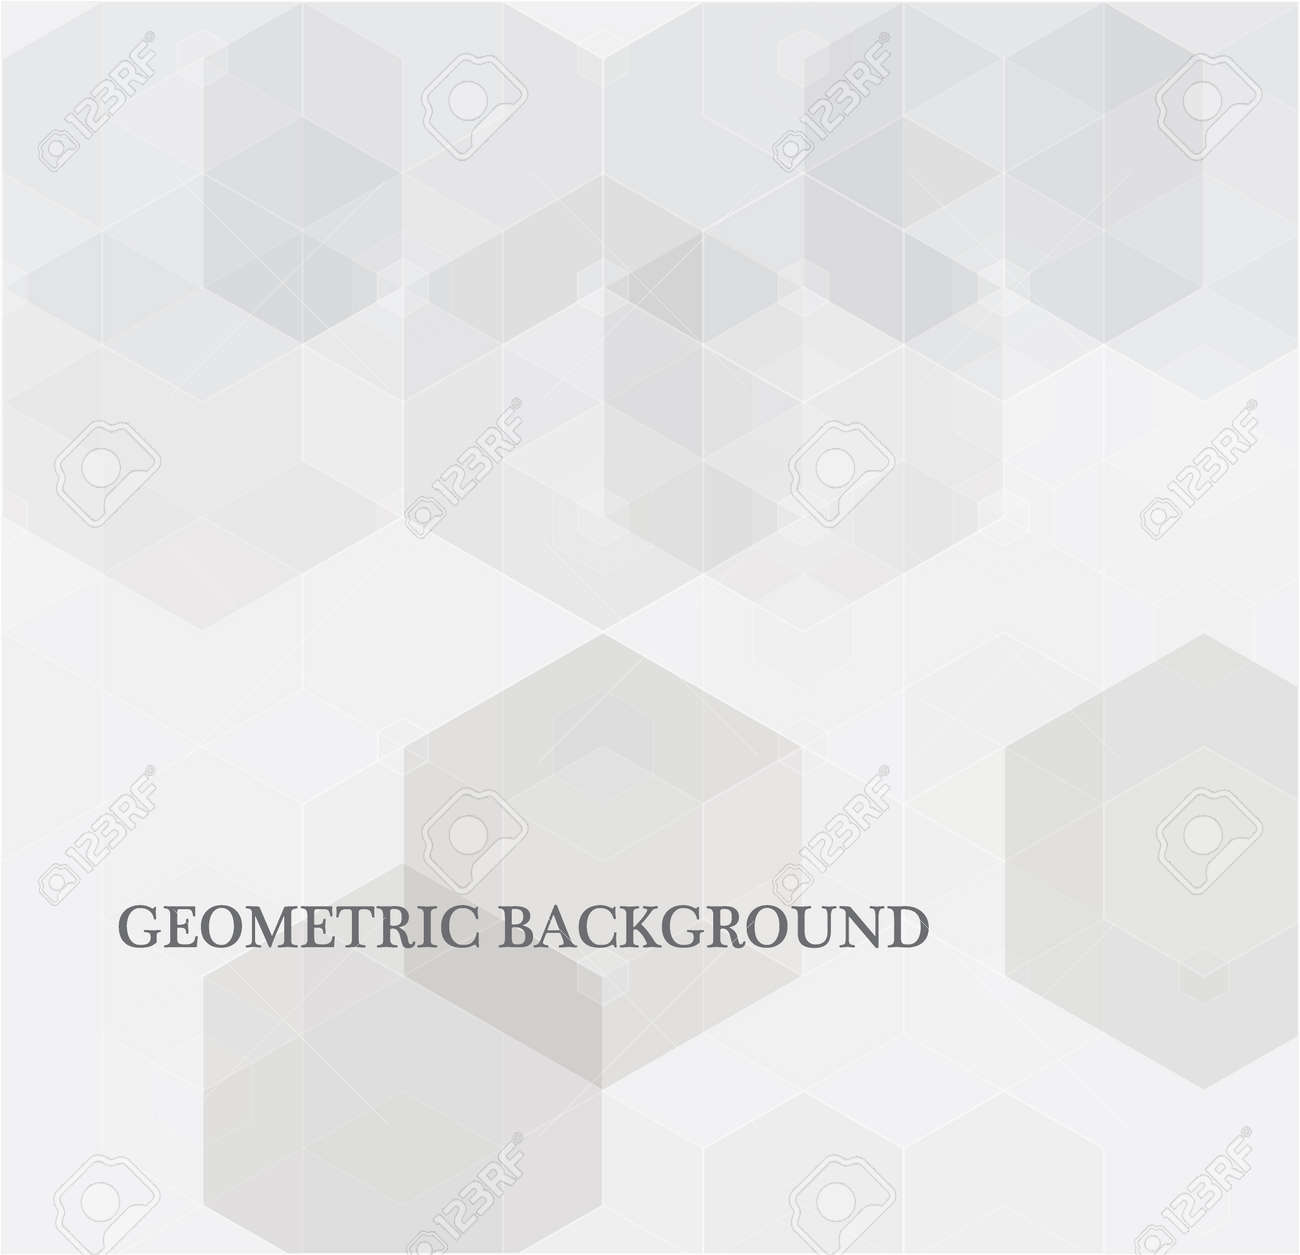 Vector Abstract science Background. Hexagon geometric design. - 165344489